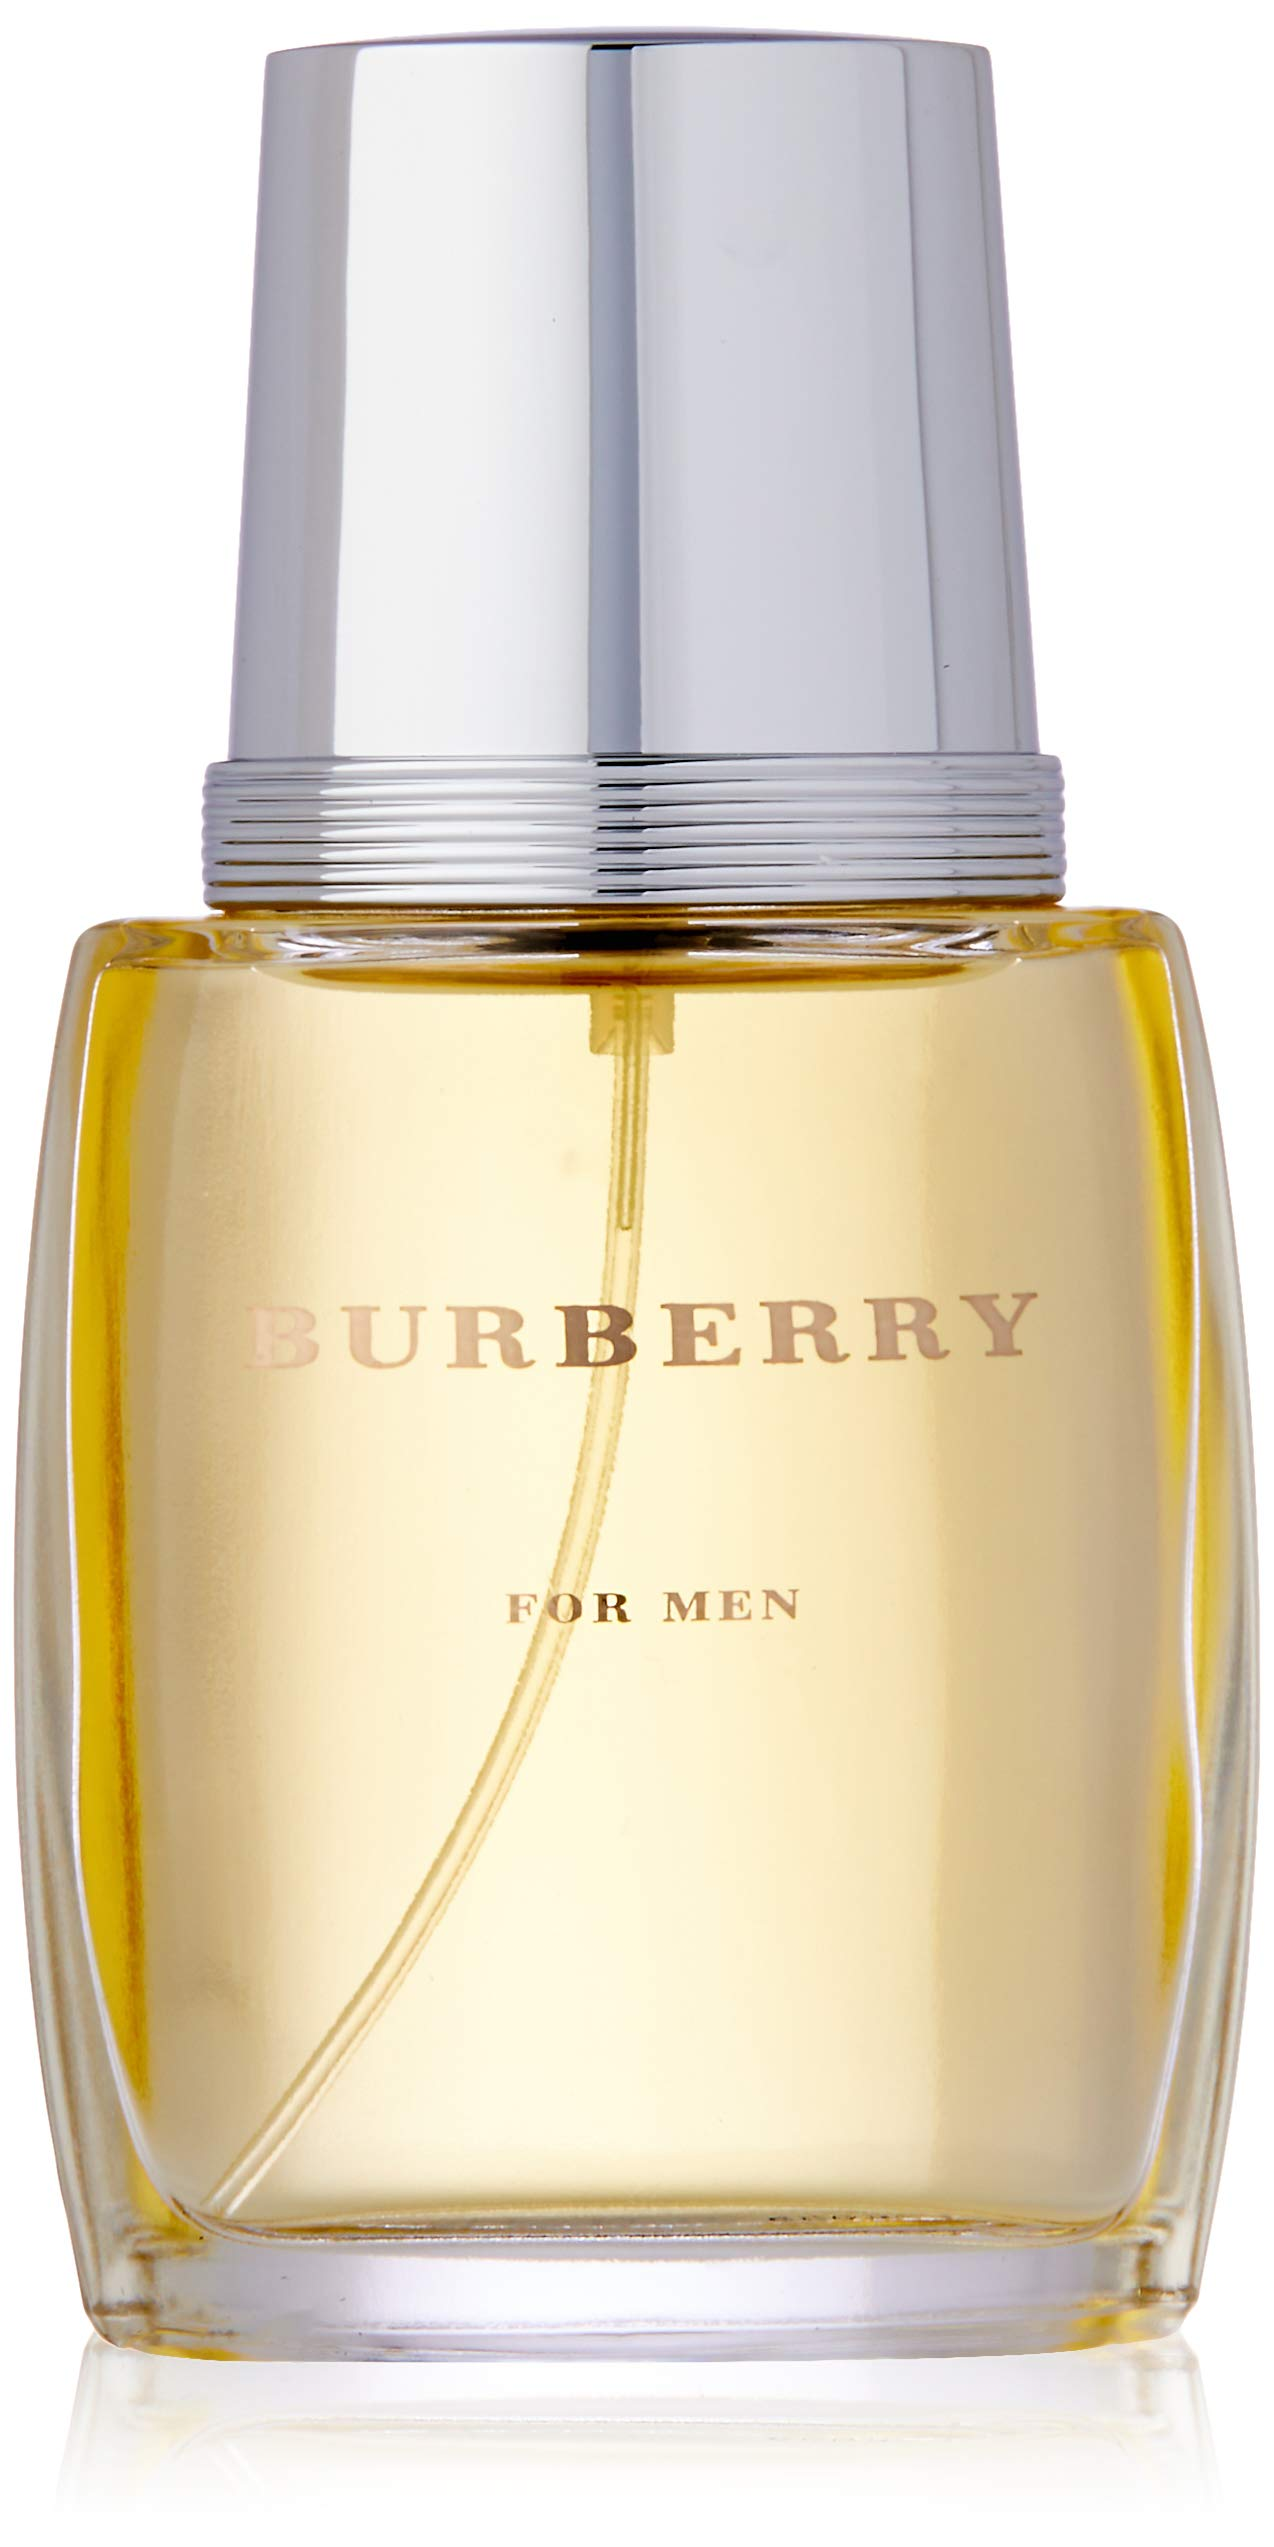 039dcd02bf21 Amazon.com  Burberry Eau De Toilette Spray for Men